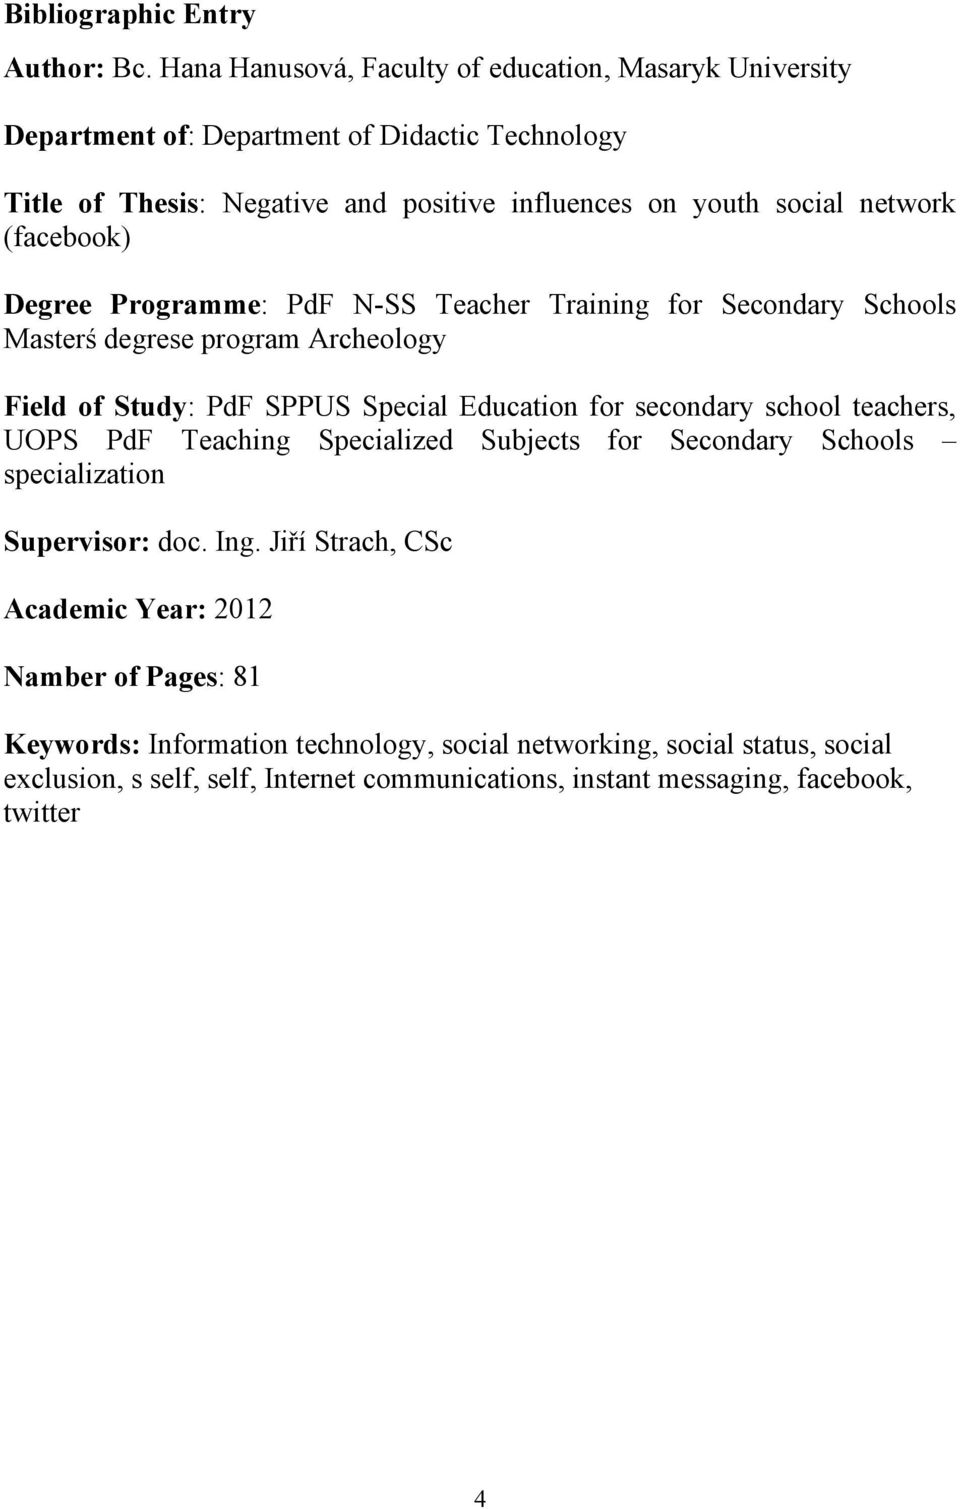 (facebook) Degree Programme: PdF N-SS Teacher Training for Secondary Schools Masterś degrese program Archeology Field of Study: PdF SPPUS Special Education for secondary school